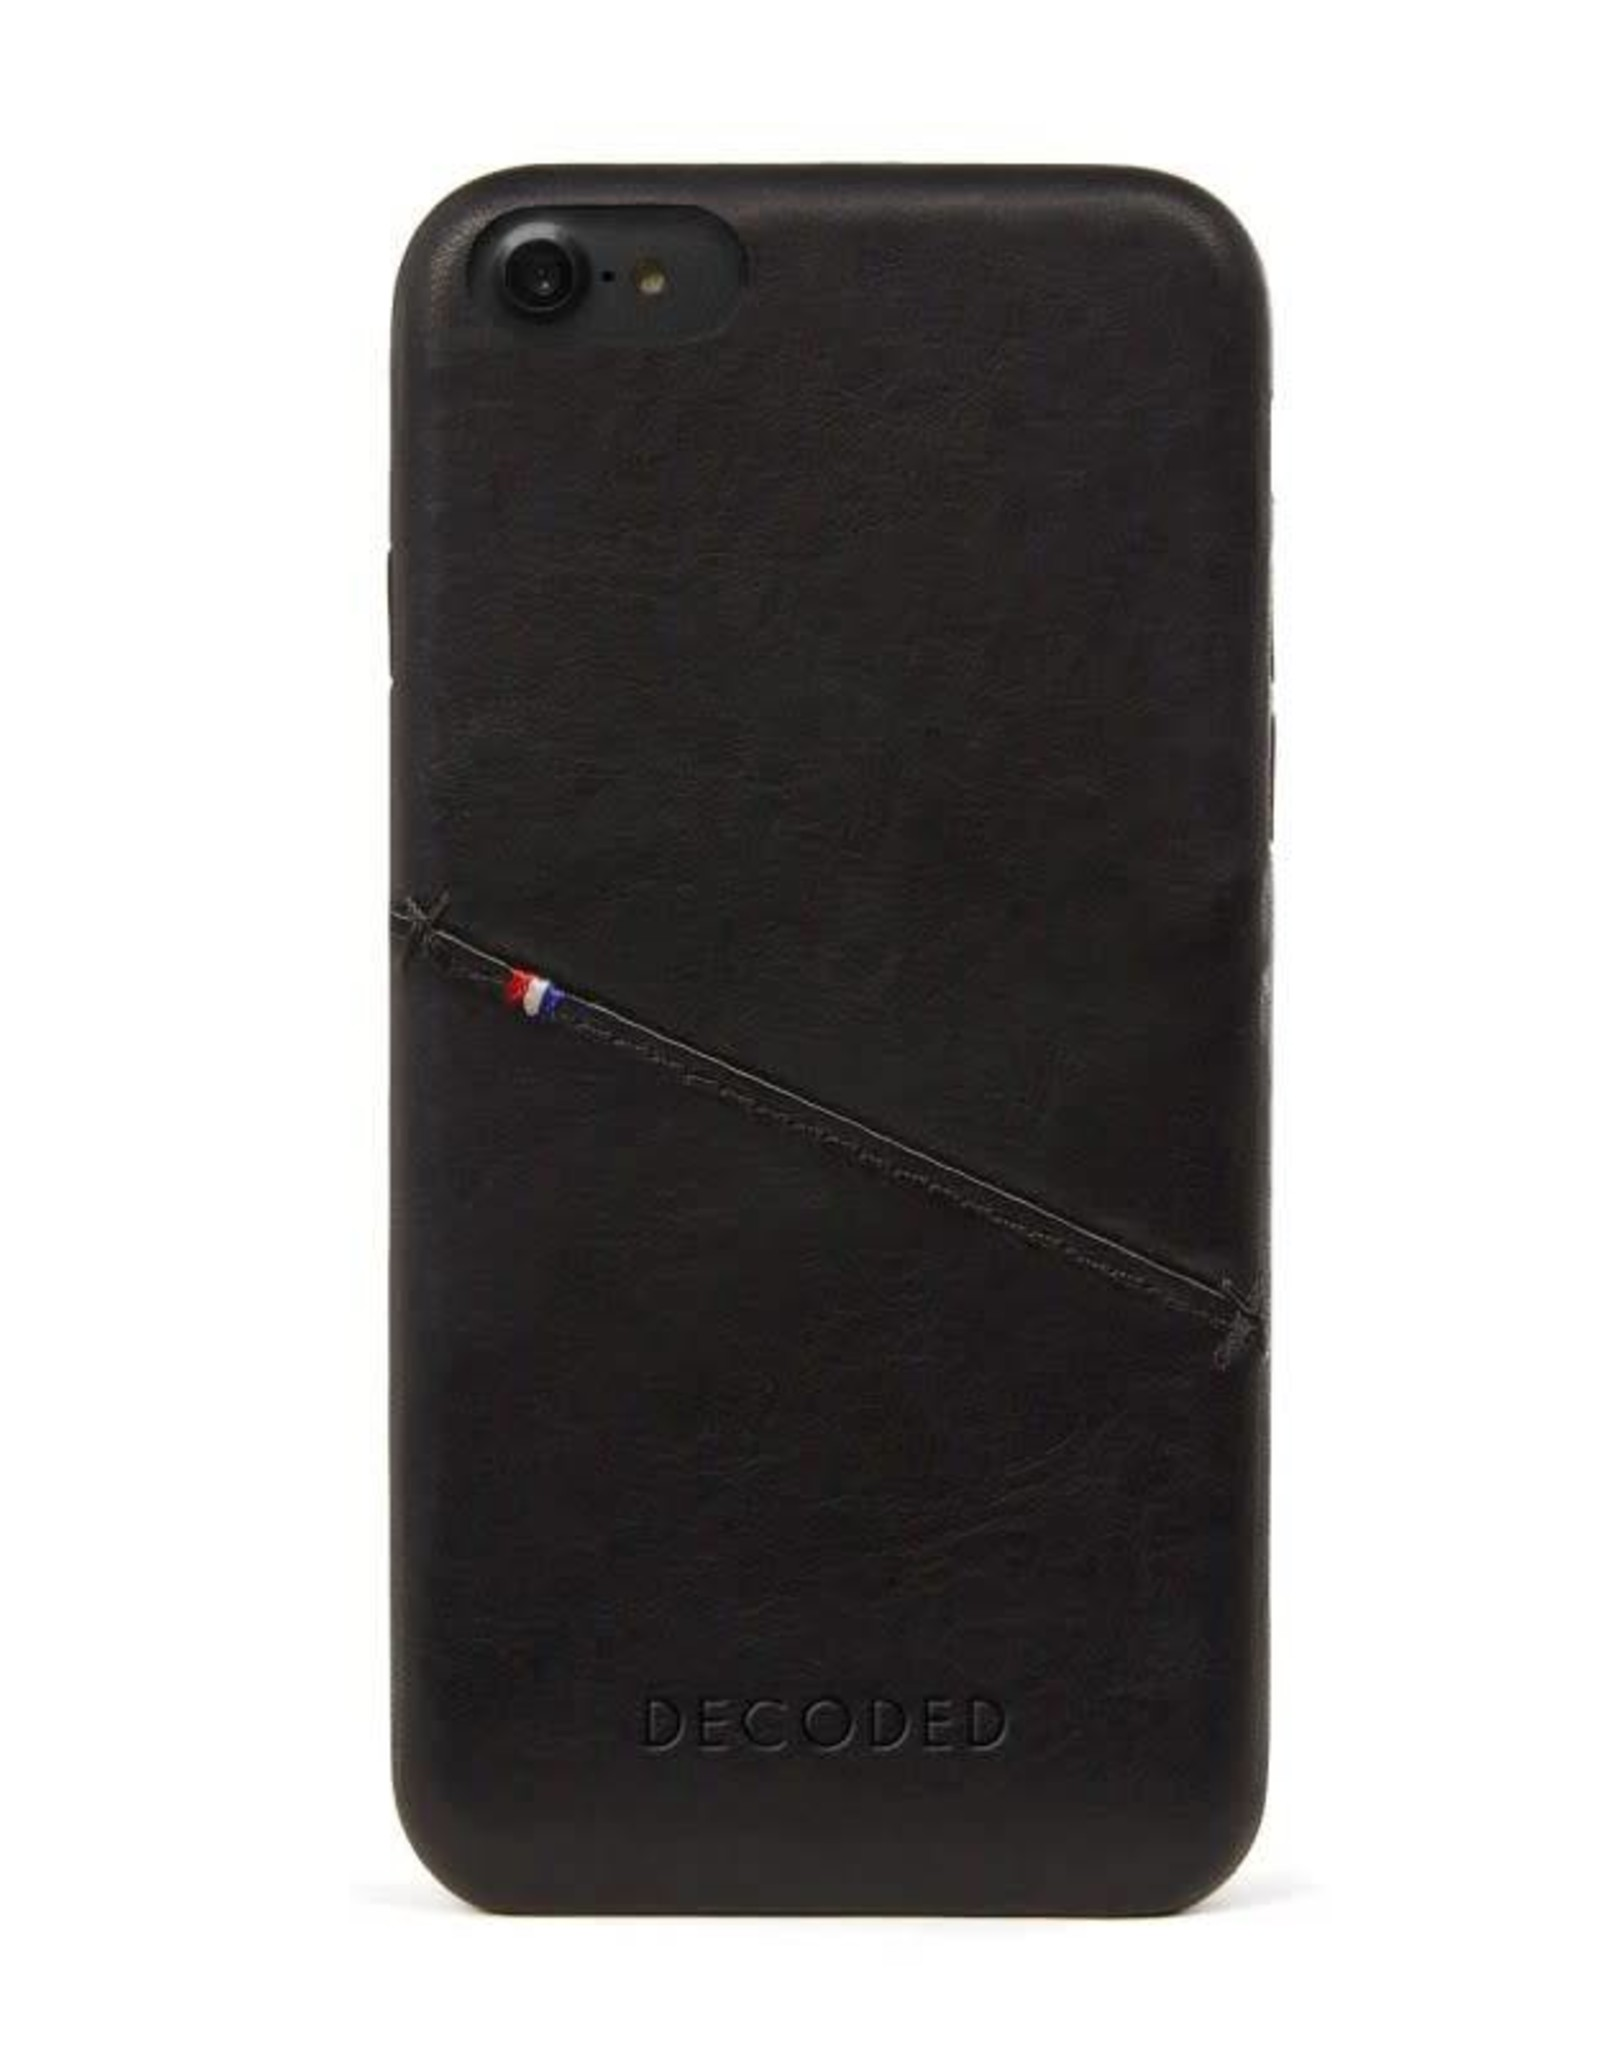 Decoded | iPhone 8/7/6/6s Leather Back Cover Black |  DC-D6IPO7BC3BK